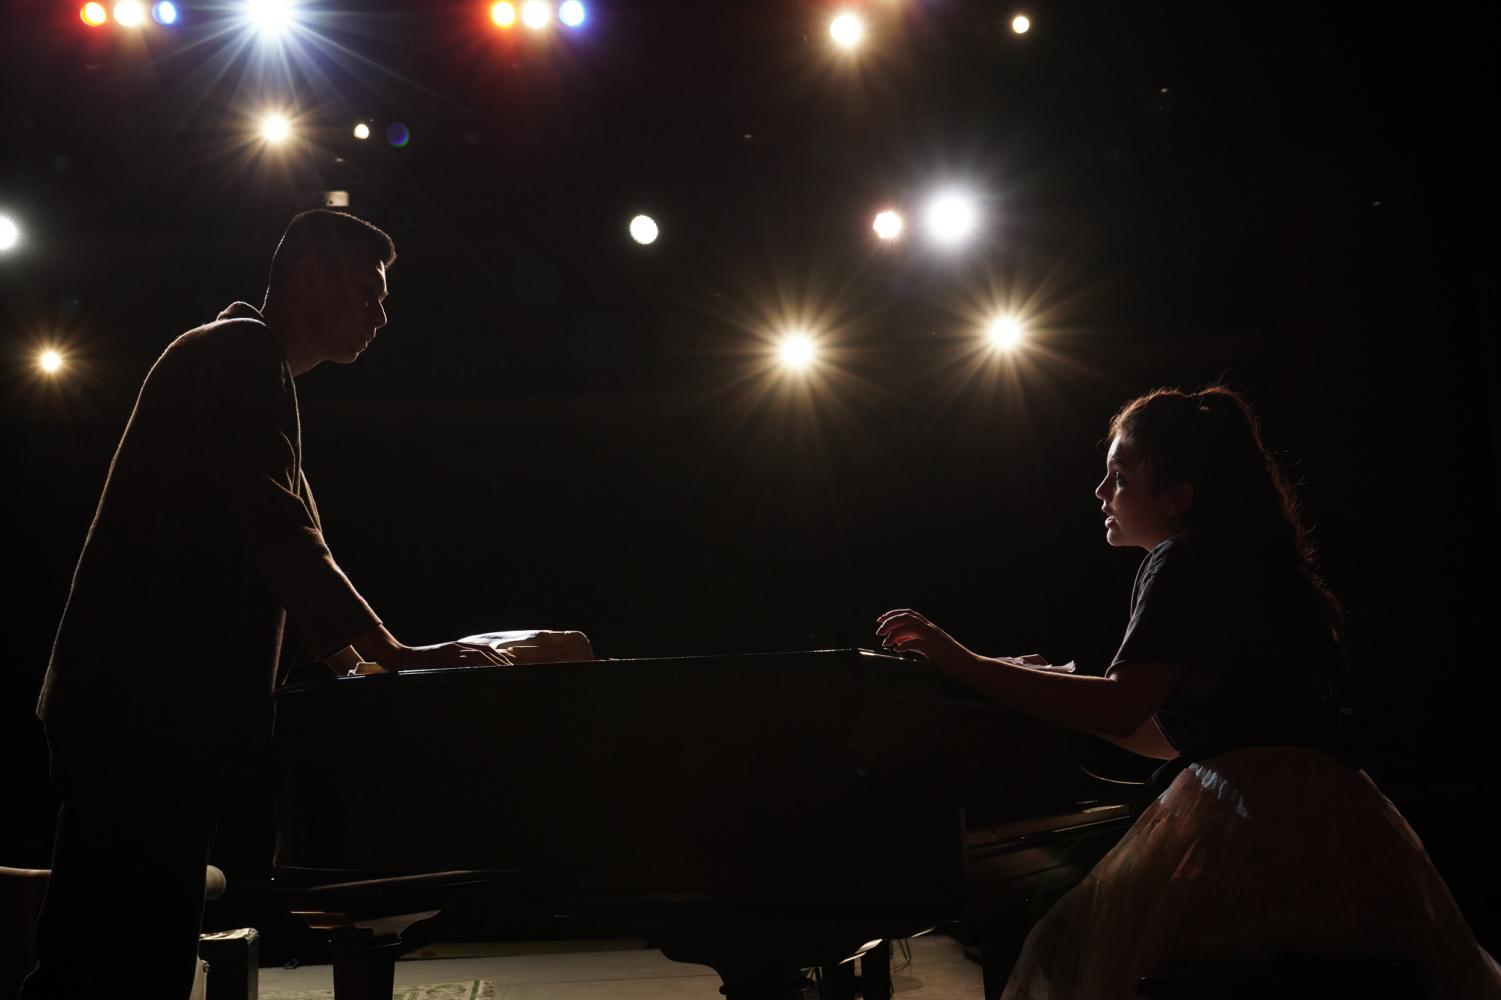 This year's fall play, The Musical Comedy Murders of 1940, opens this Thursday.